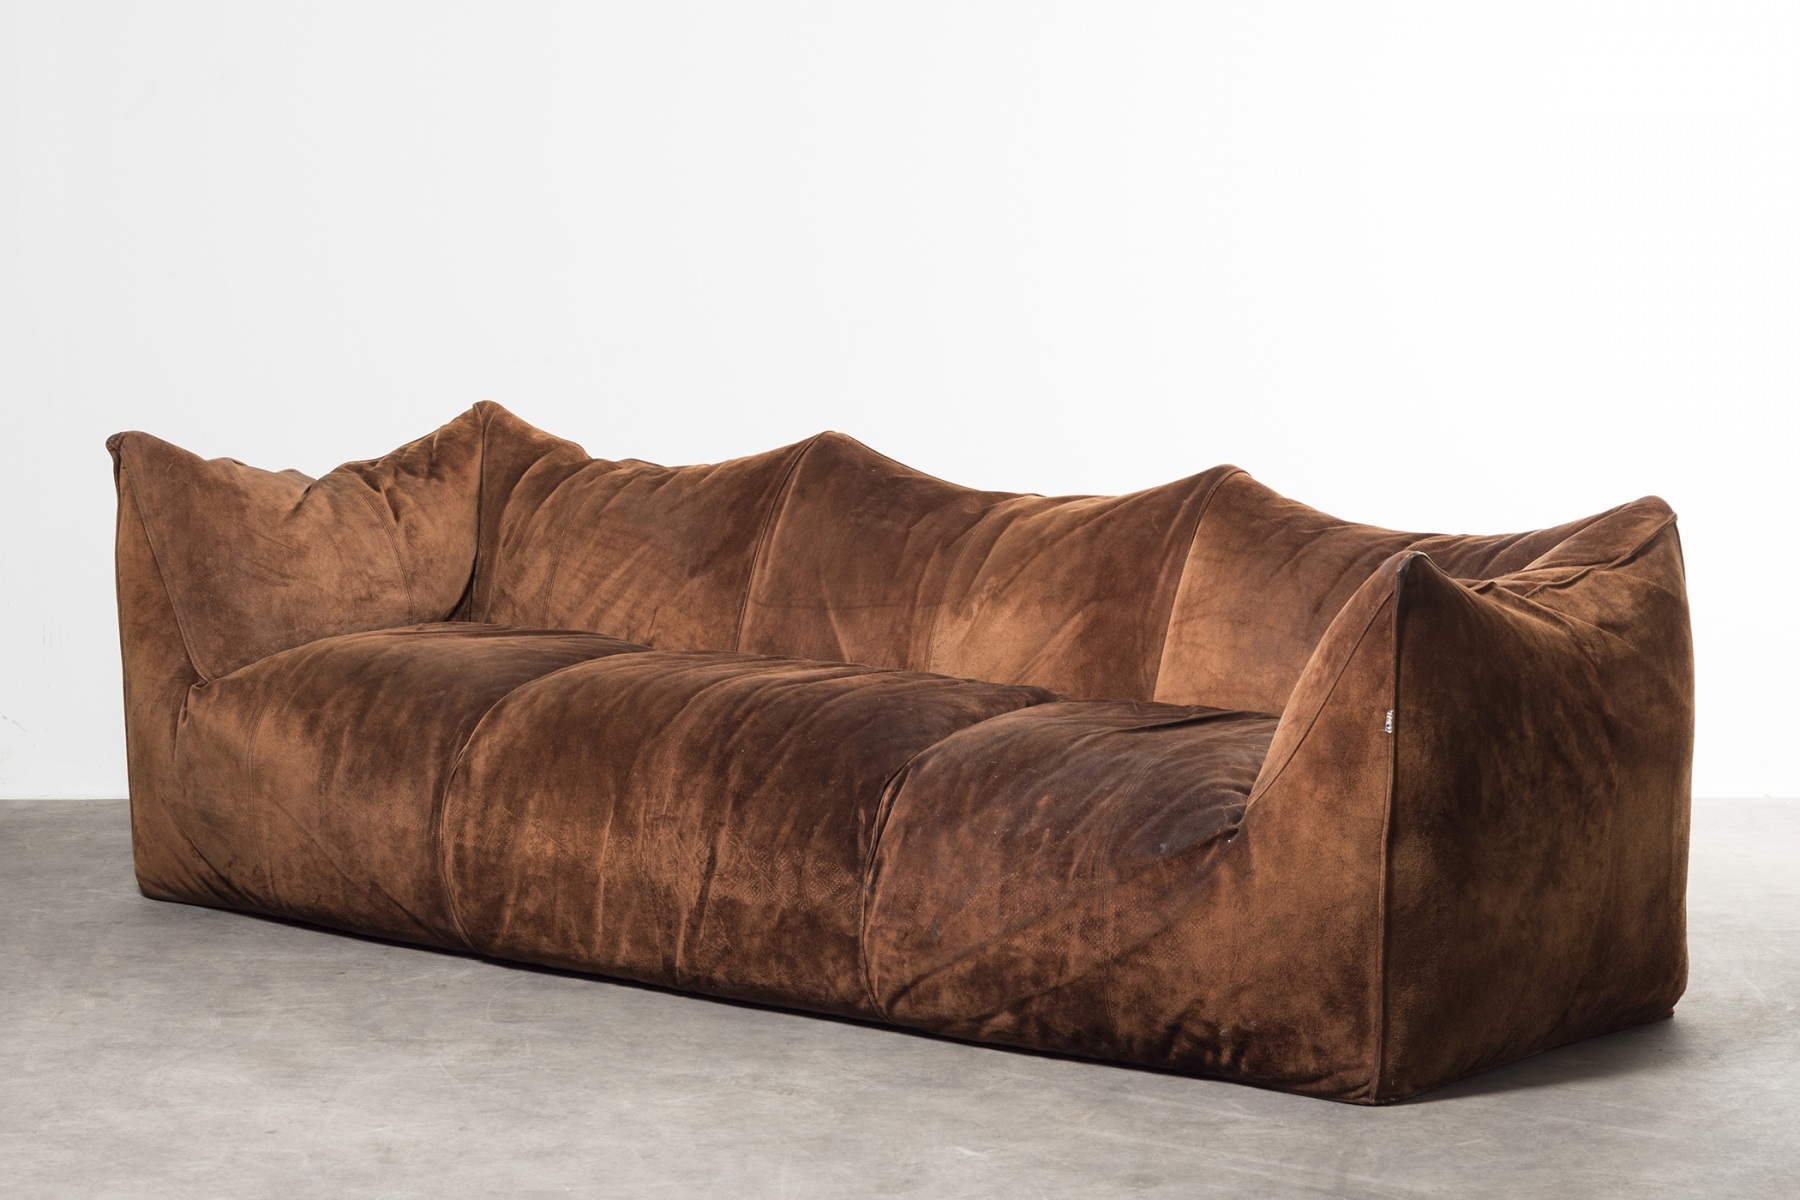 Three seater sofa mod. 'Le Bambole' Mario Bellini pic-1